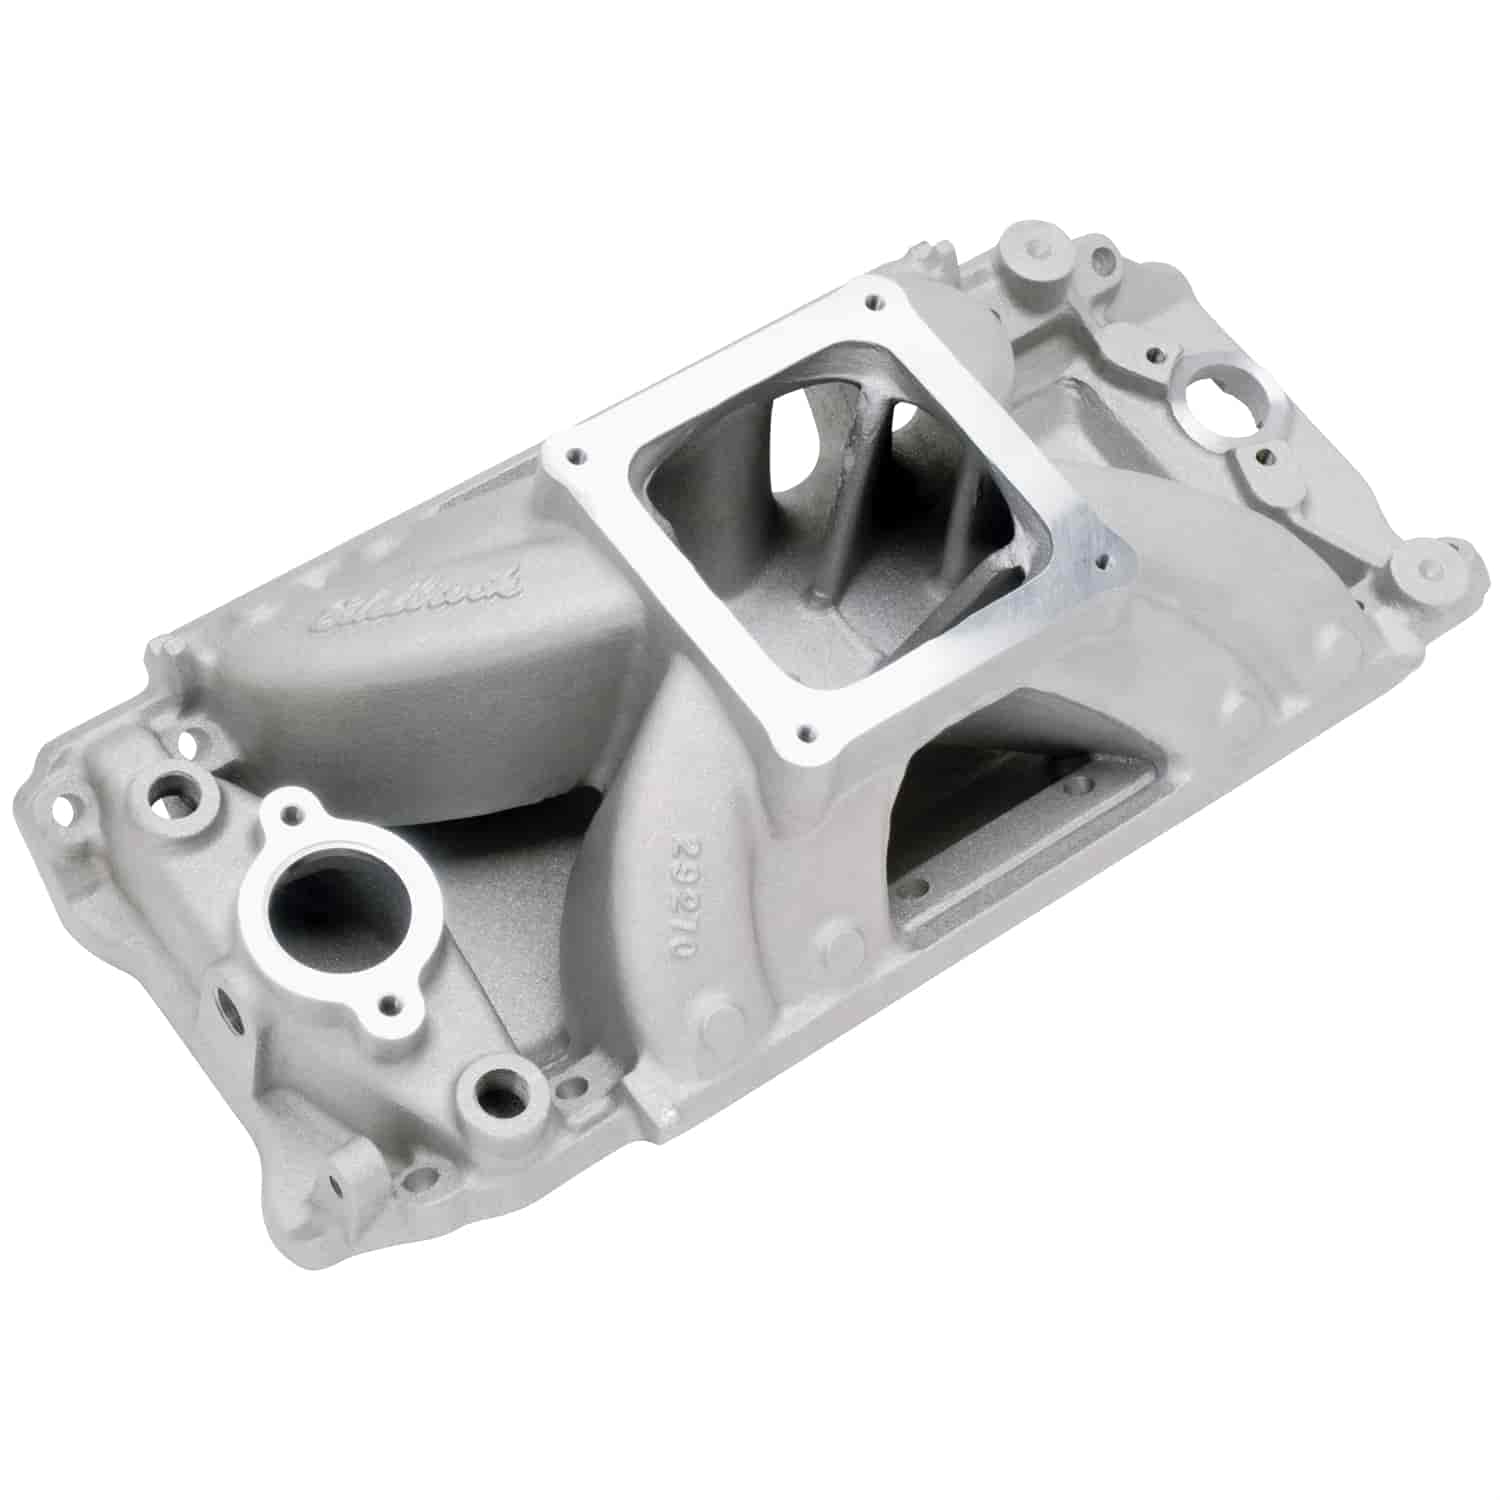 Edelbrock 29270 Super Victor Big Block Chevy Intake